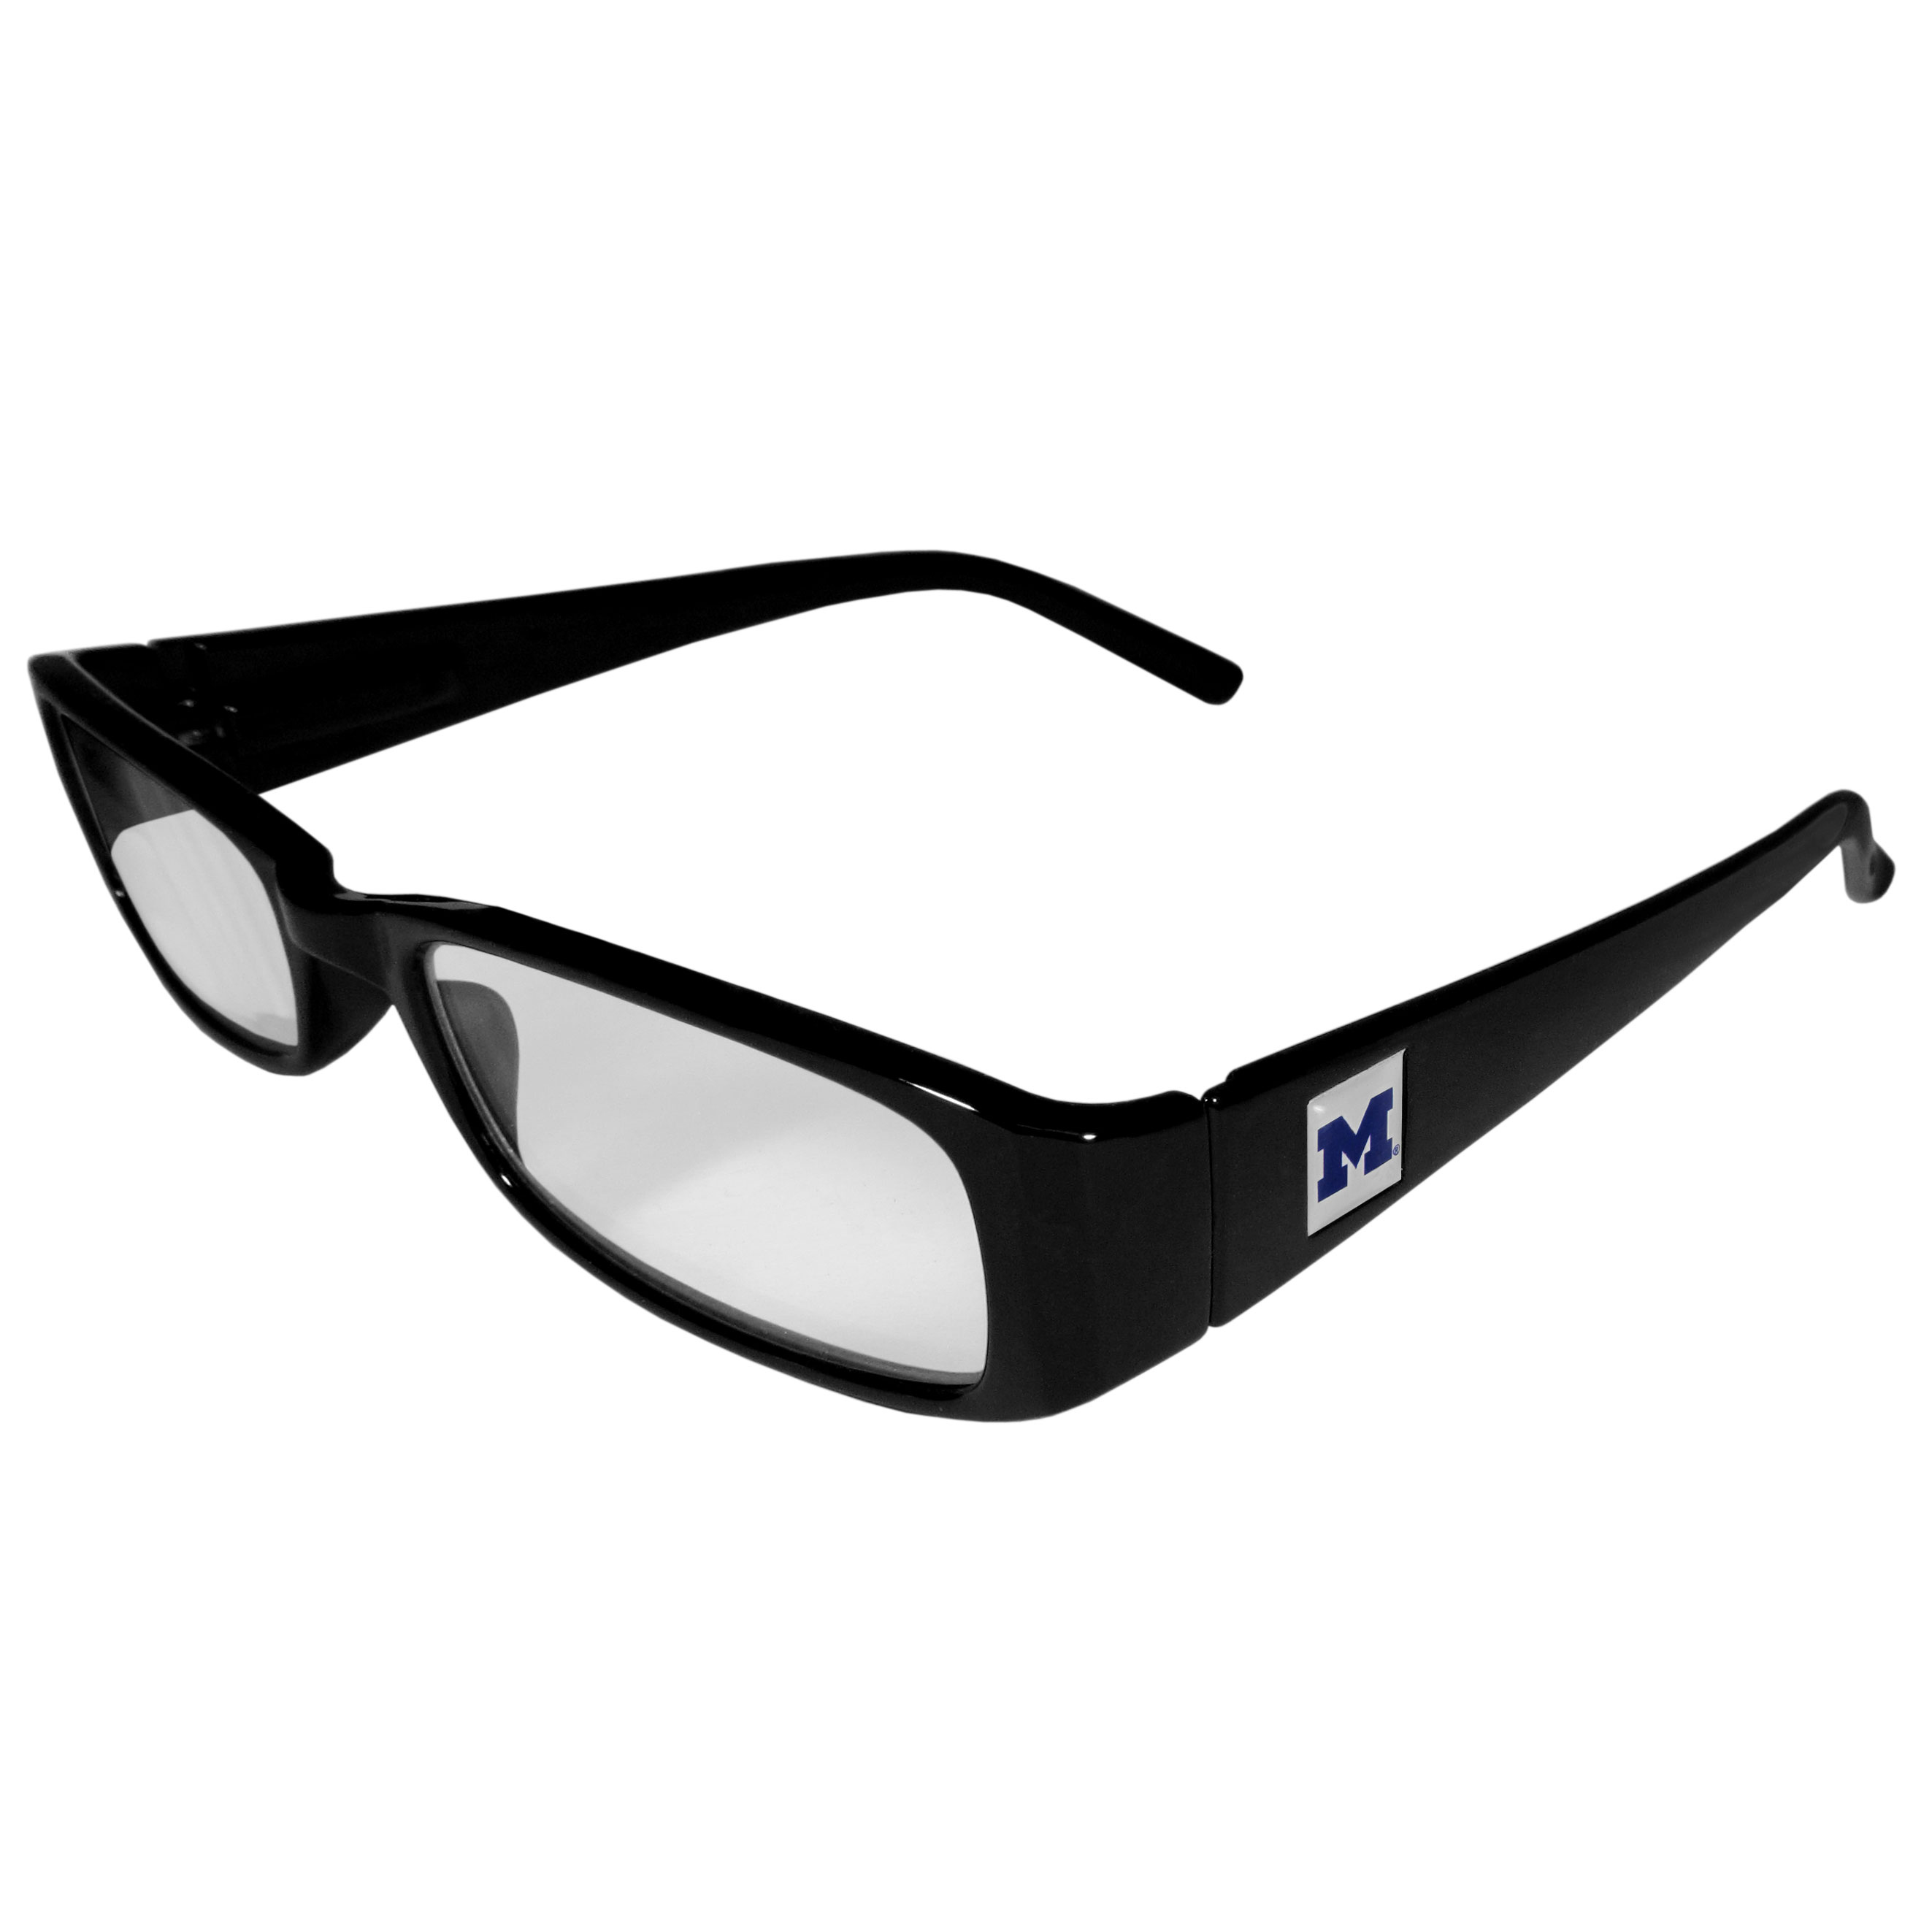 Michigan Wolverines Black Reading Glasses +1.25 - Our Michigan Wolverines reading glasses are 5.25 inches wide and feature the team logo on each arm. Magnification Power 1.25